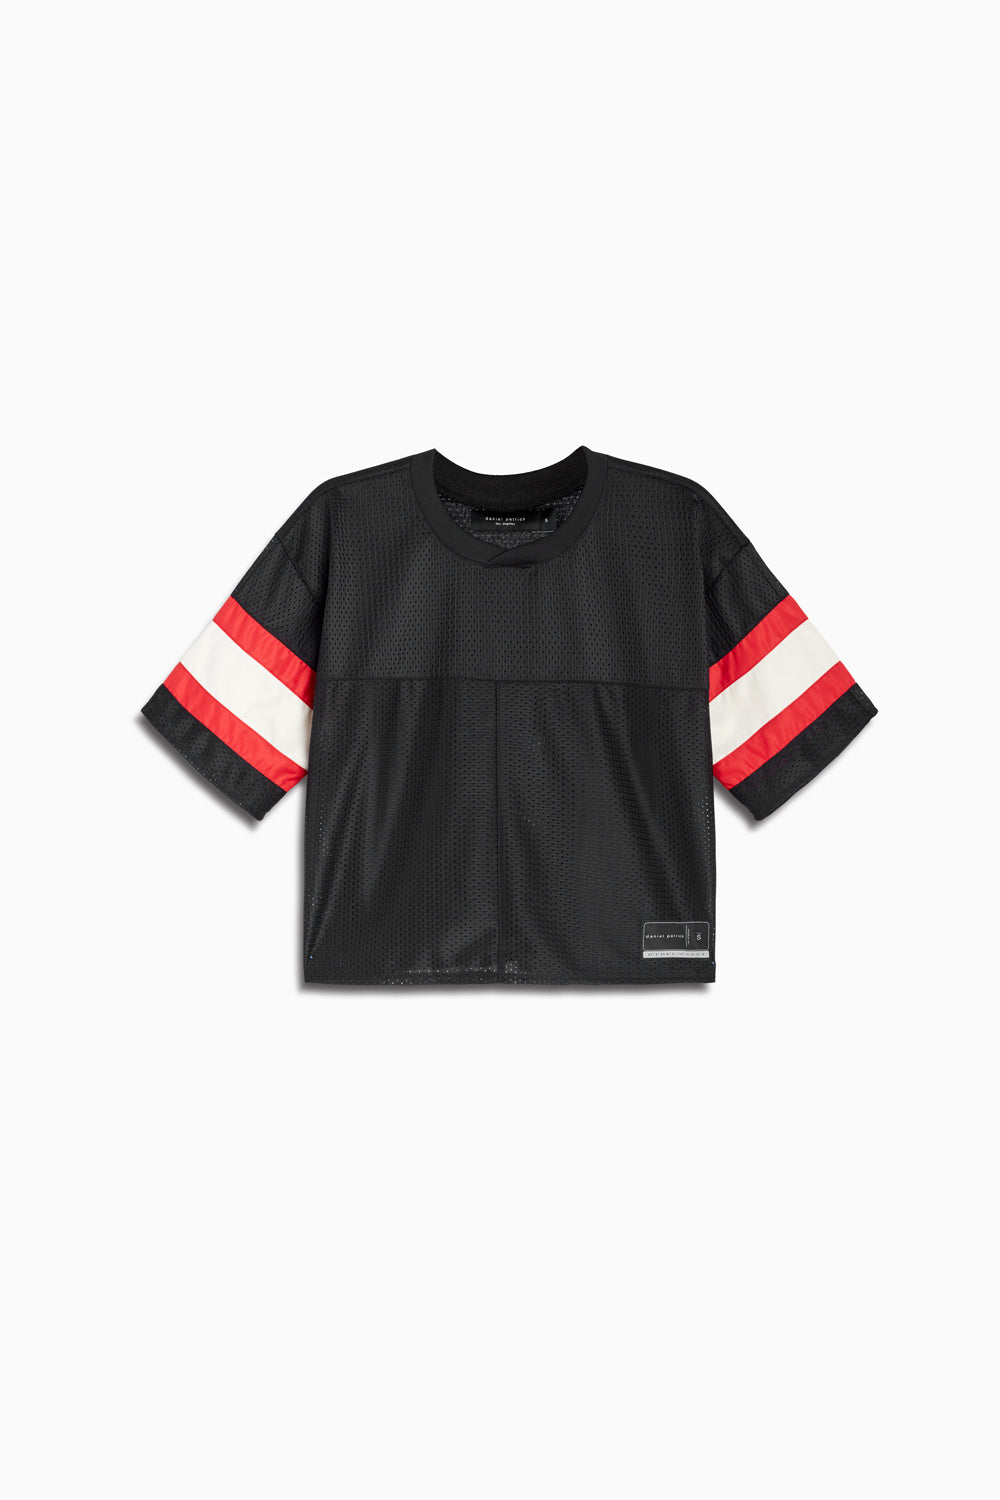 womens crop mesh football jersey in black/red/ivory by daniel patrick